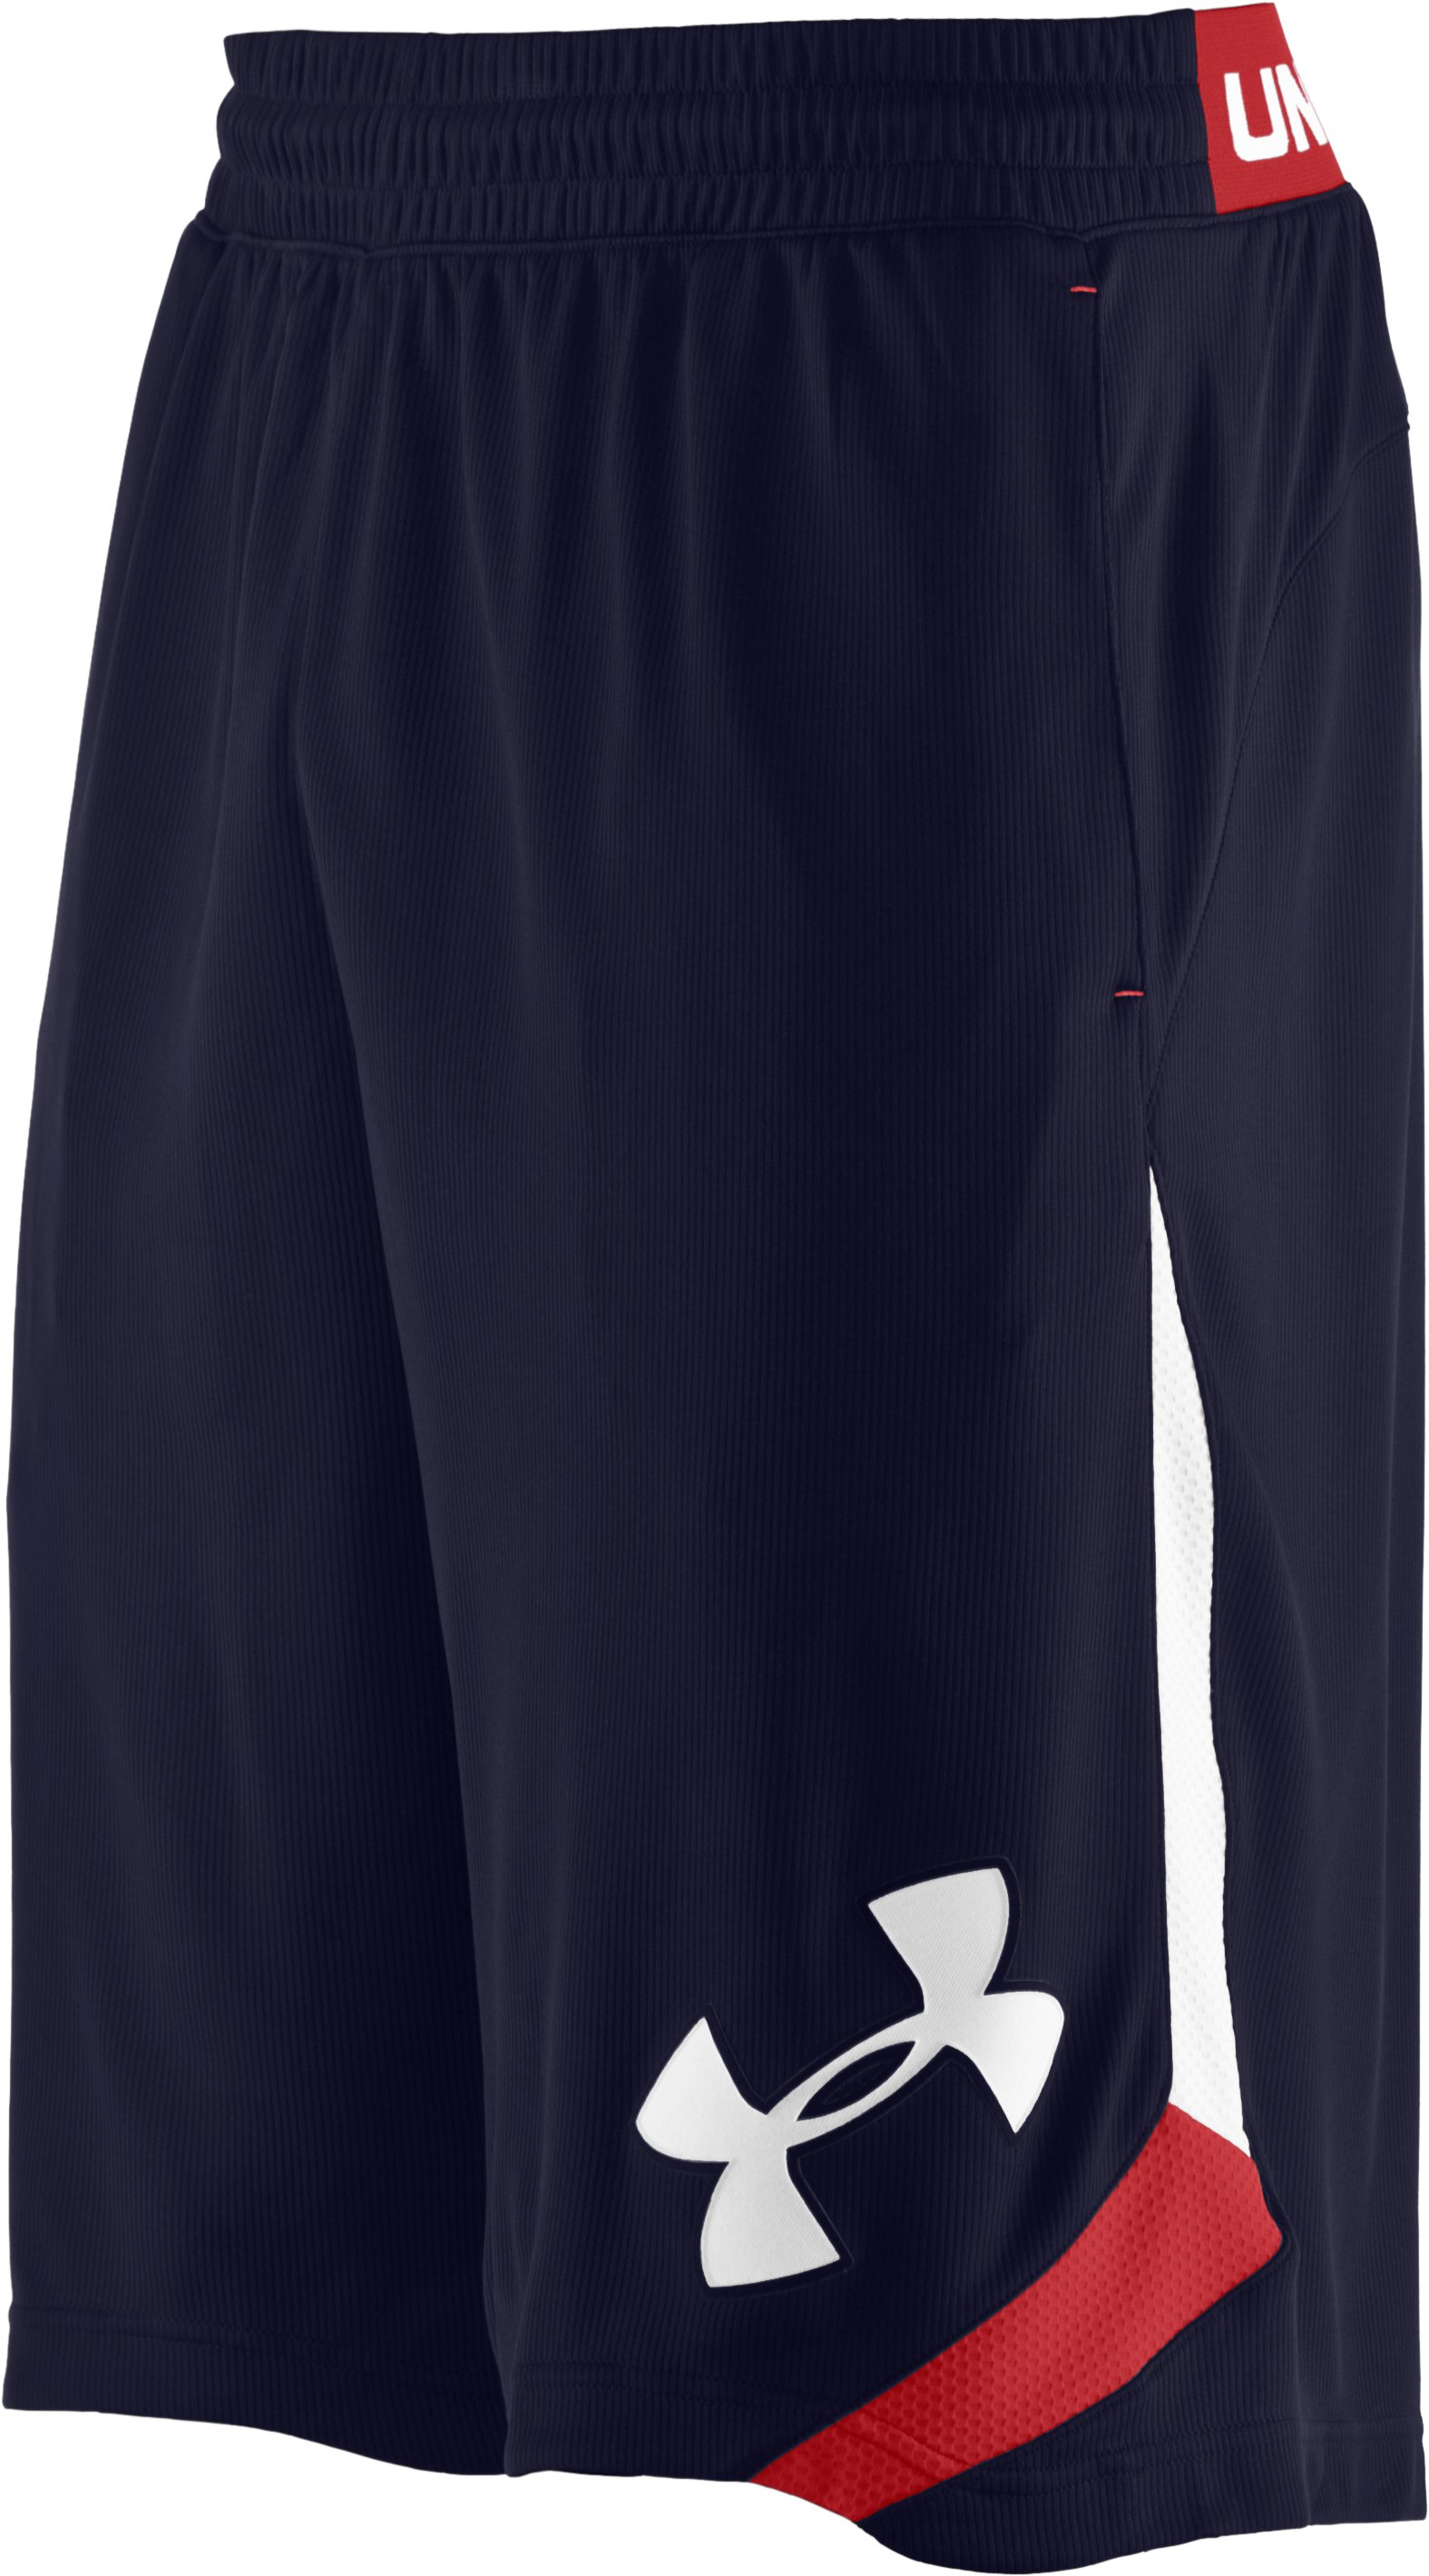 "Men's UA Blurkyrie 12"" Basketball Shorts, Midnight Navy"